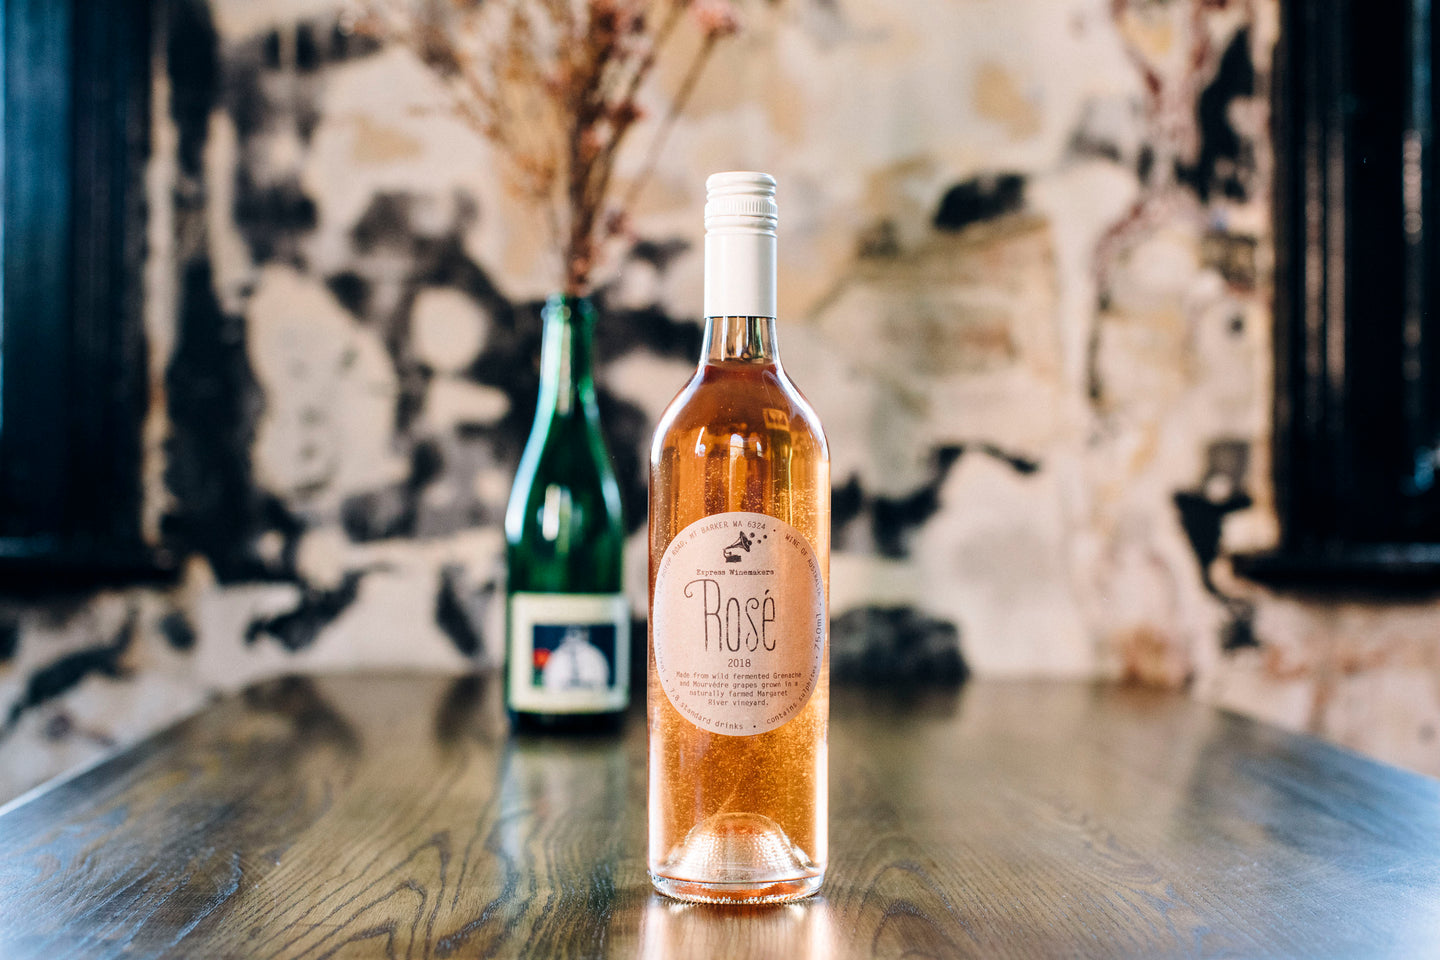 2018 Express Winemakers Rosé